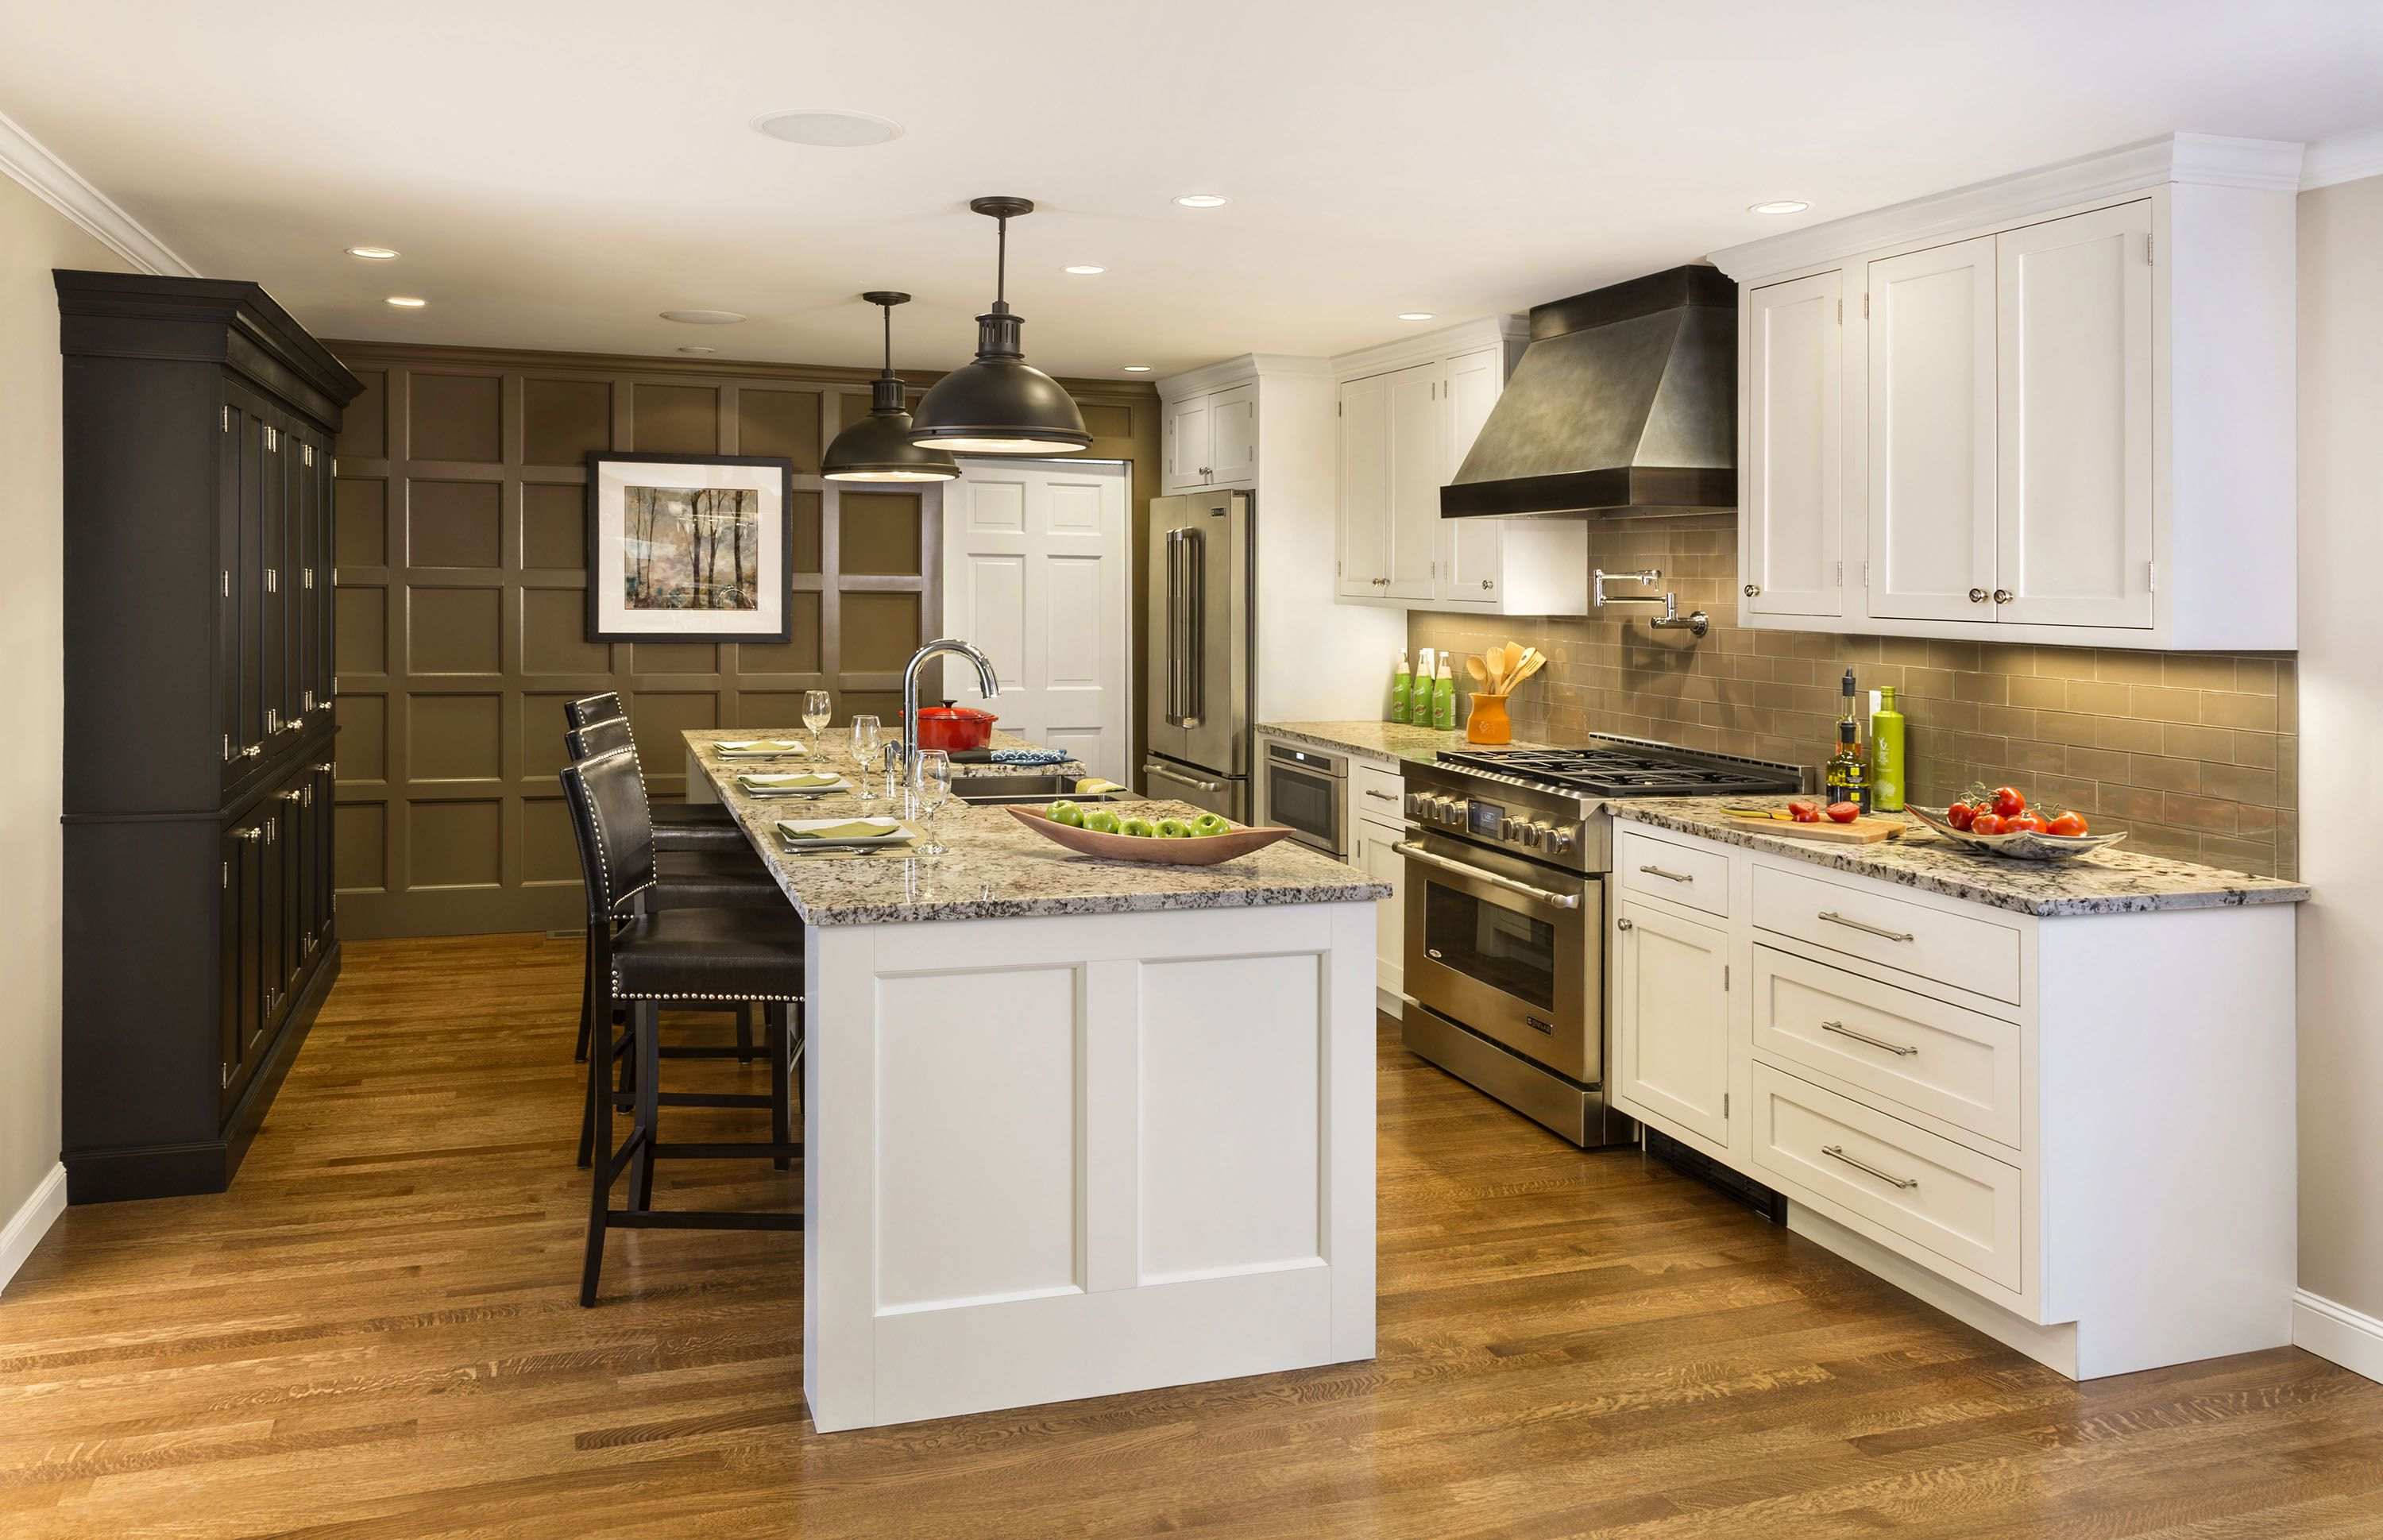 Best Finish For Kitchen Cabinets Kitchen Cabinet Styles Kitchen Cabinet Door Styles Shaker Kitchen Cabinets